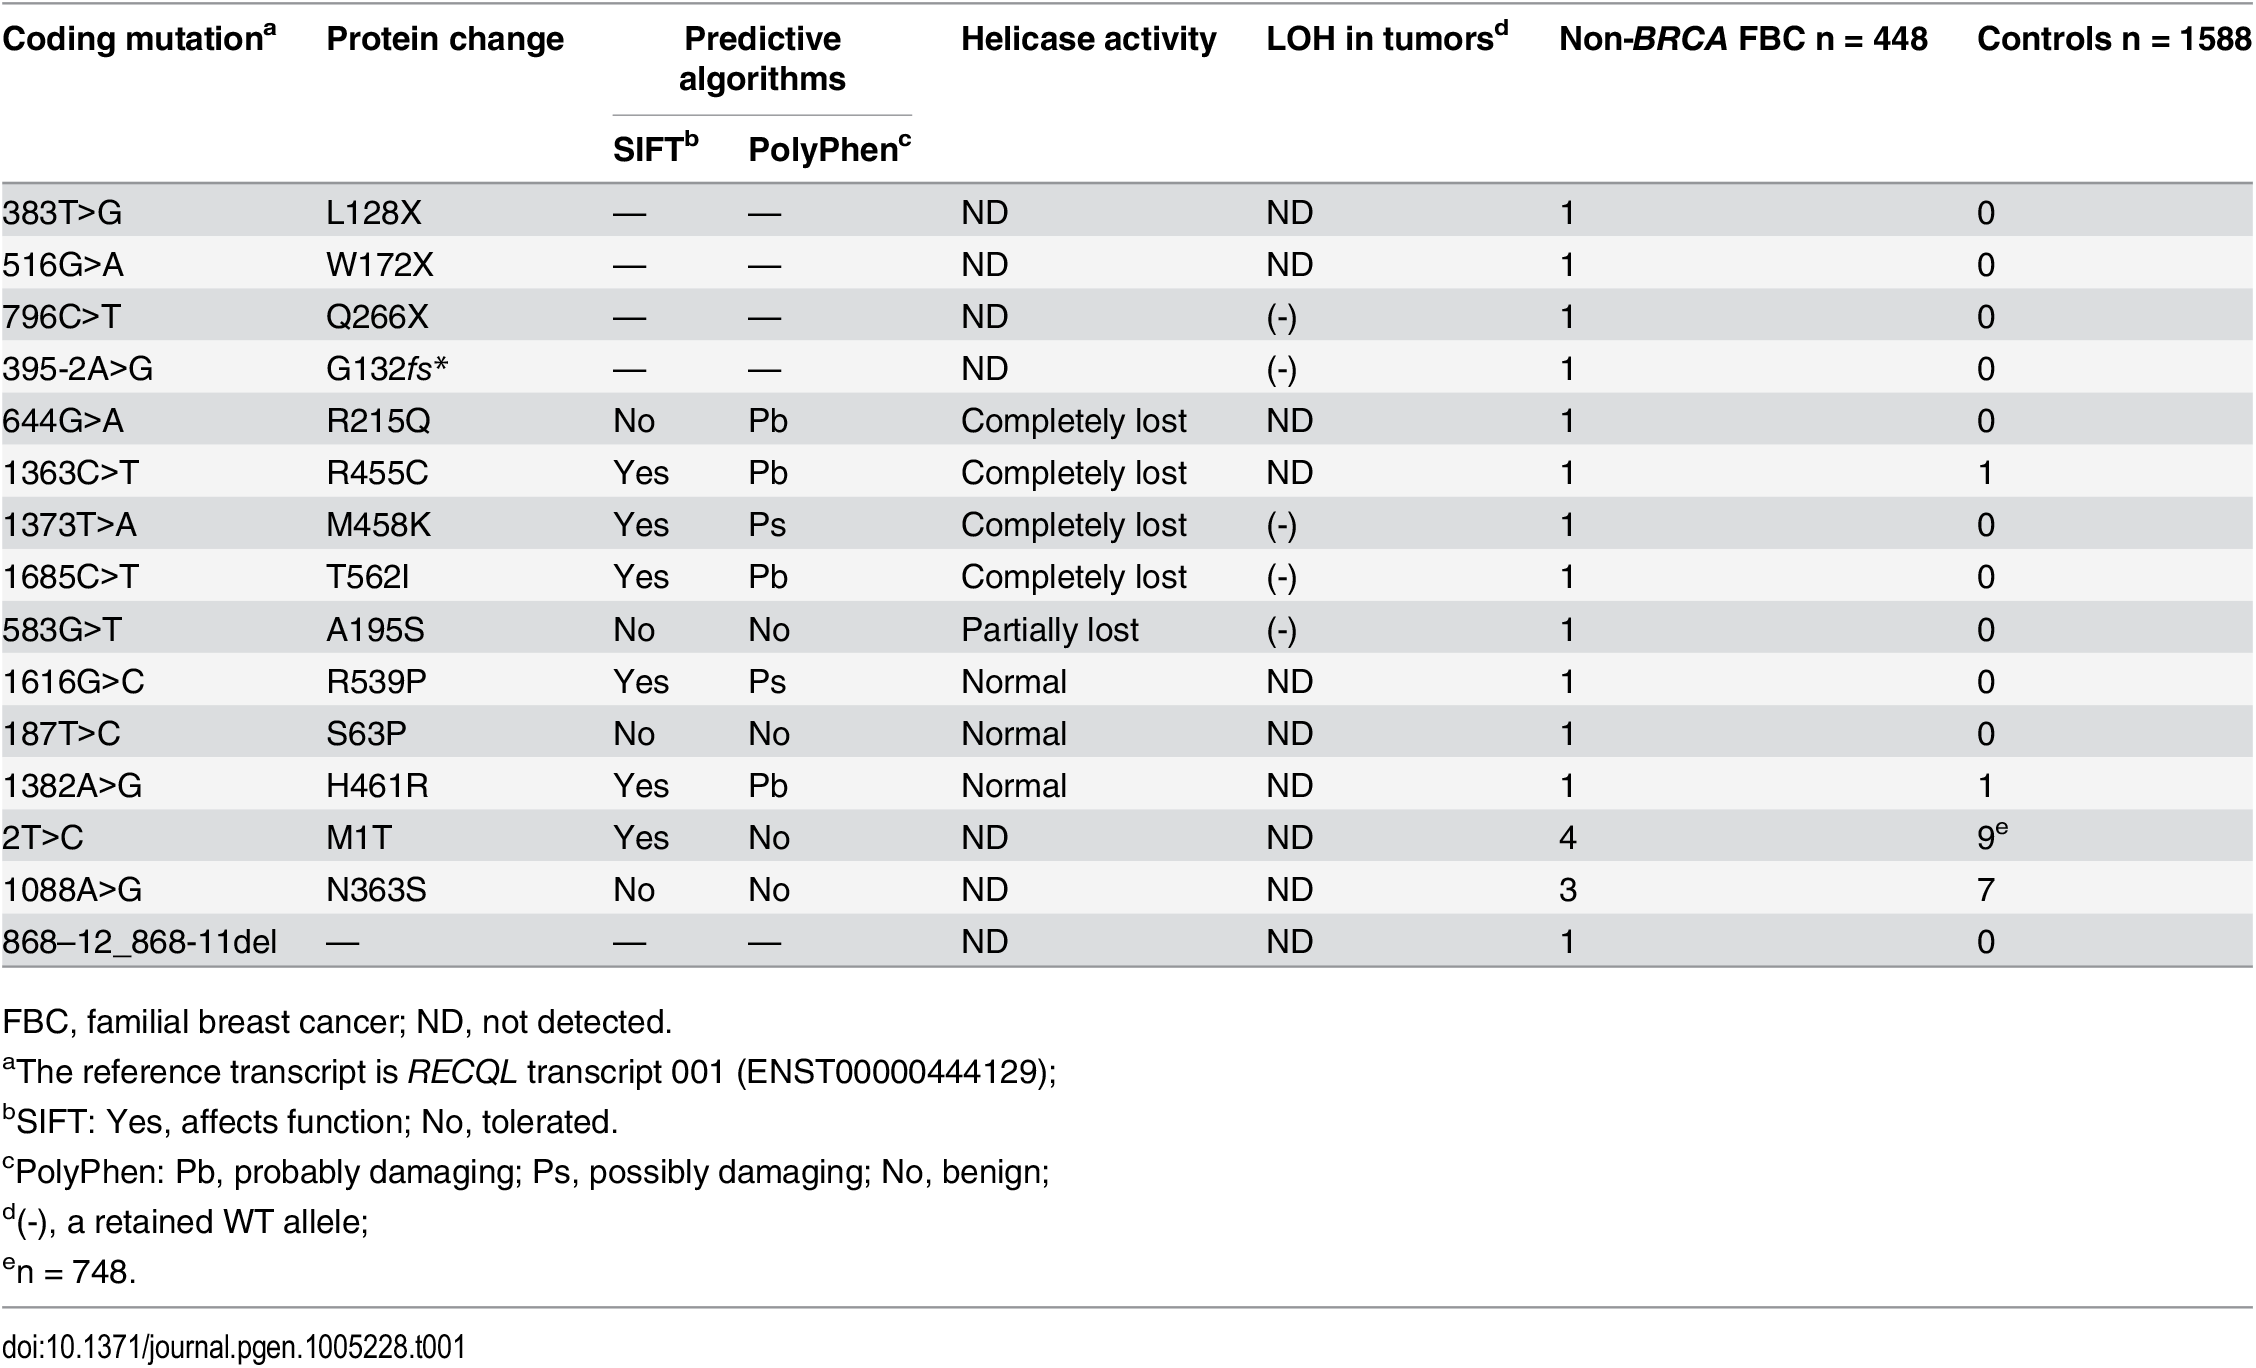 Mutations in <i>RECQL</i> gene identified in the 448 <i>BRCA1/2</i>-negative familial breast cancer patients.